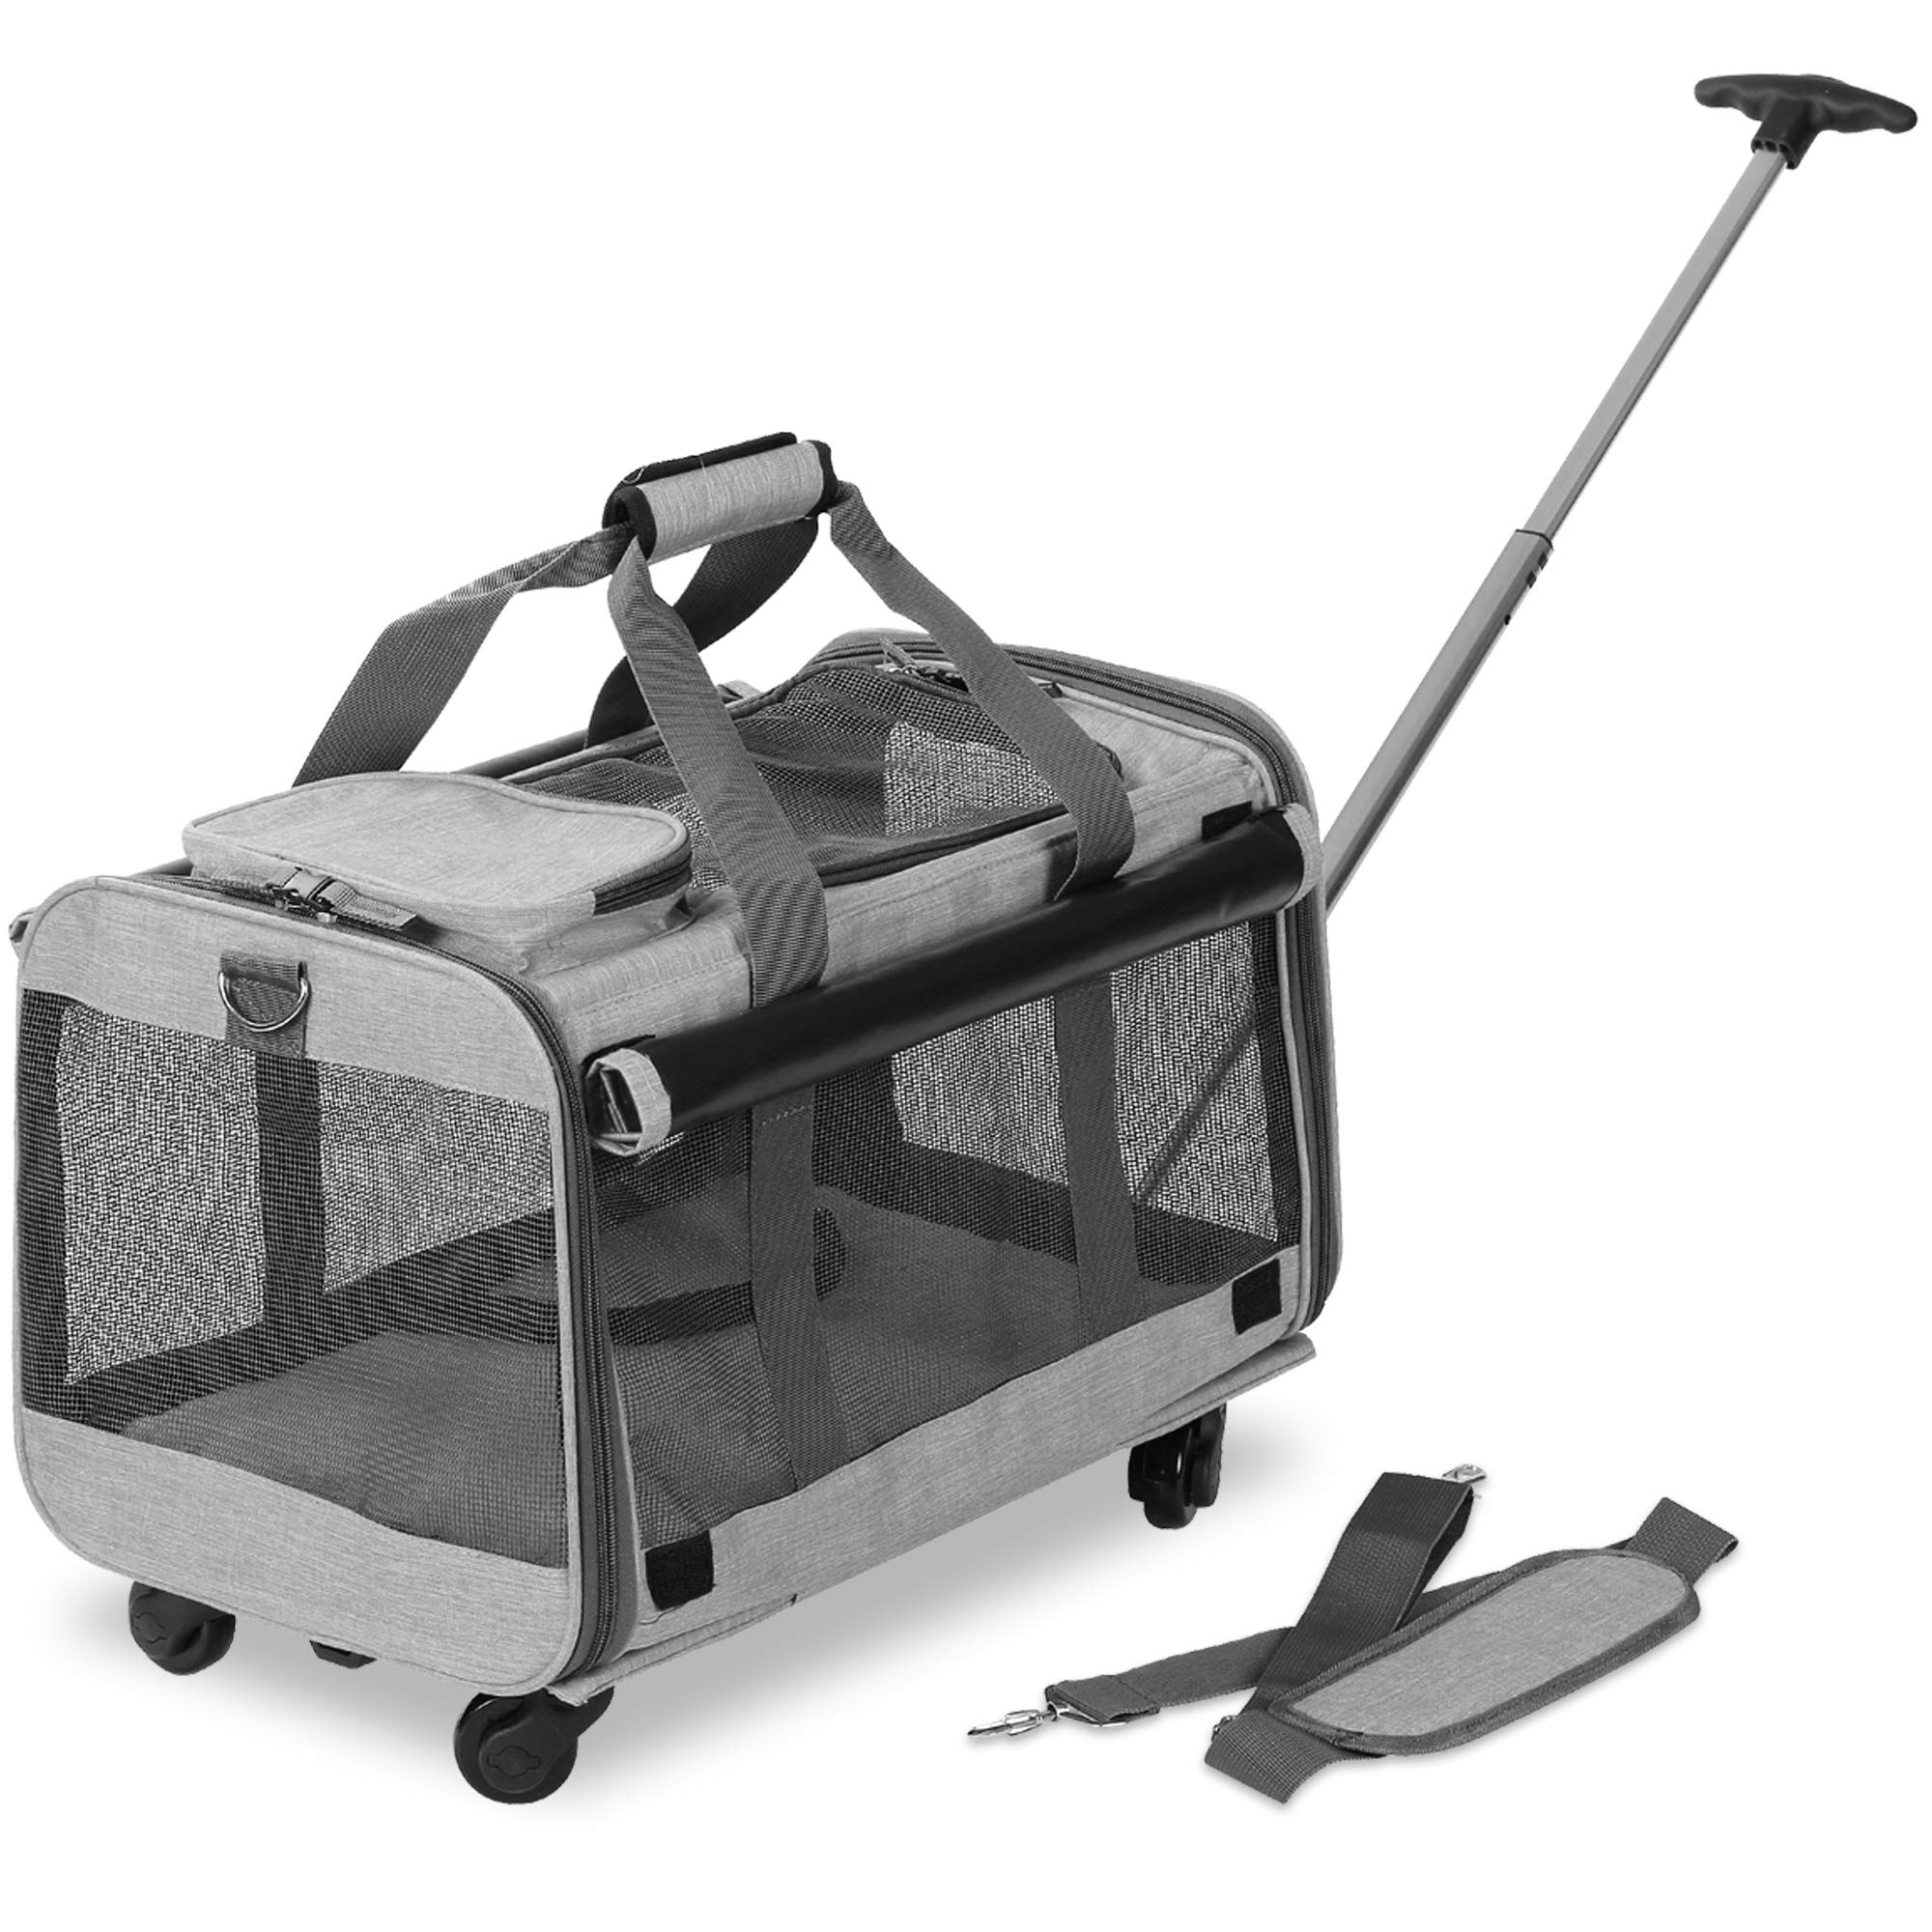 KOPEKS Pet Carrier with Detachable Wheels for Small and Medium Dogs & Cats - Heather Grey